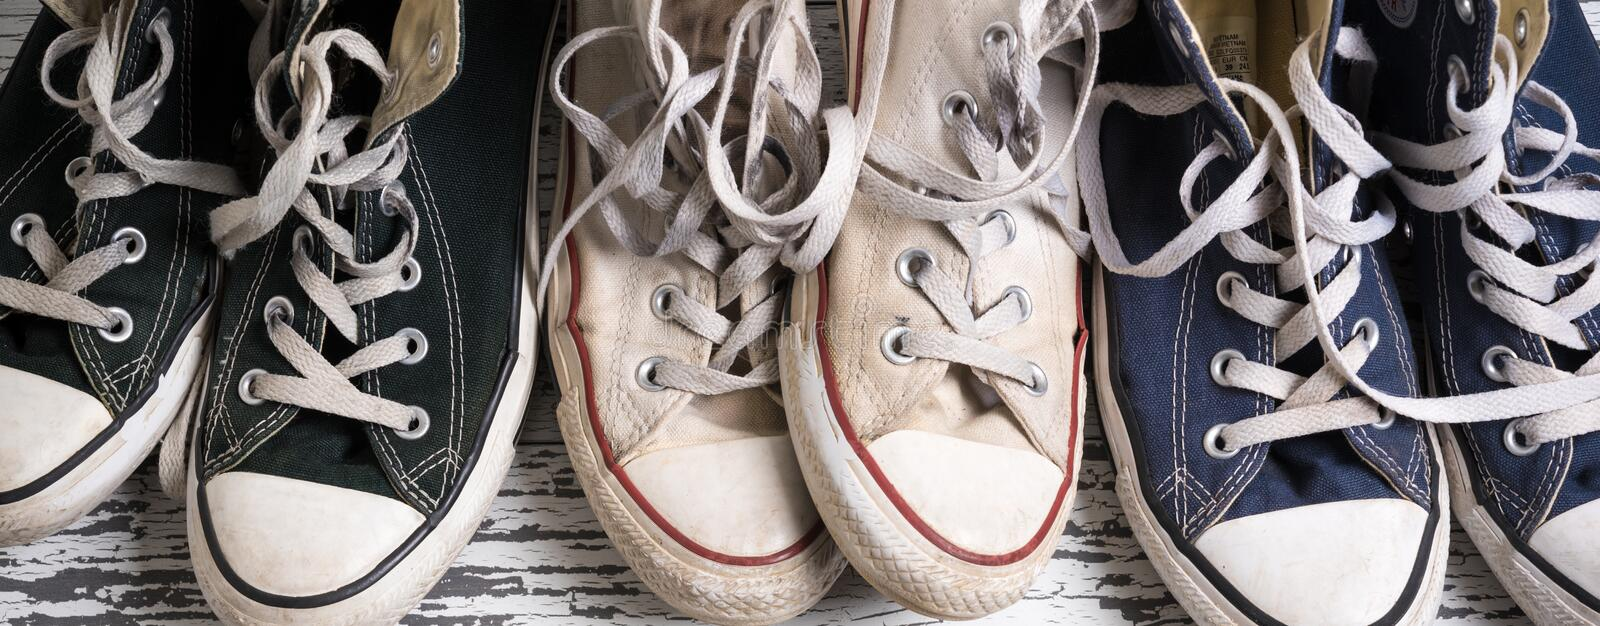 Assorted group of canvas, retro tennis shoes. Old, dirty, retro, classic, canvas tennis shoes assorted royalty free stock photo